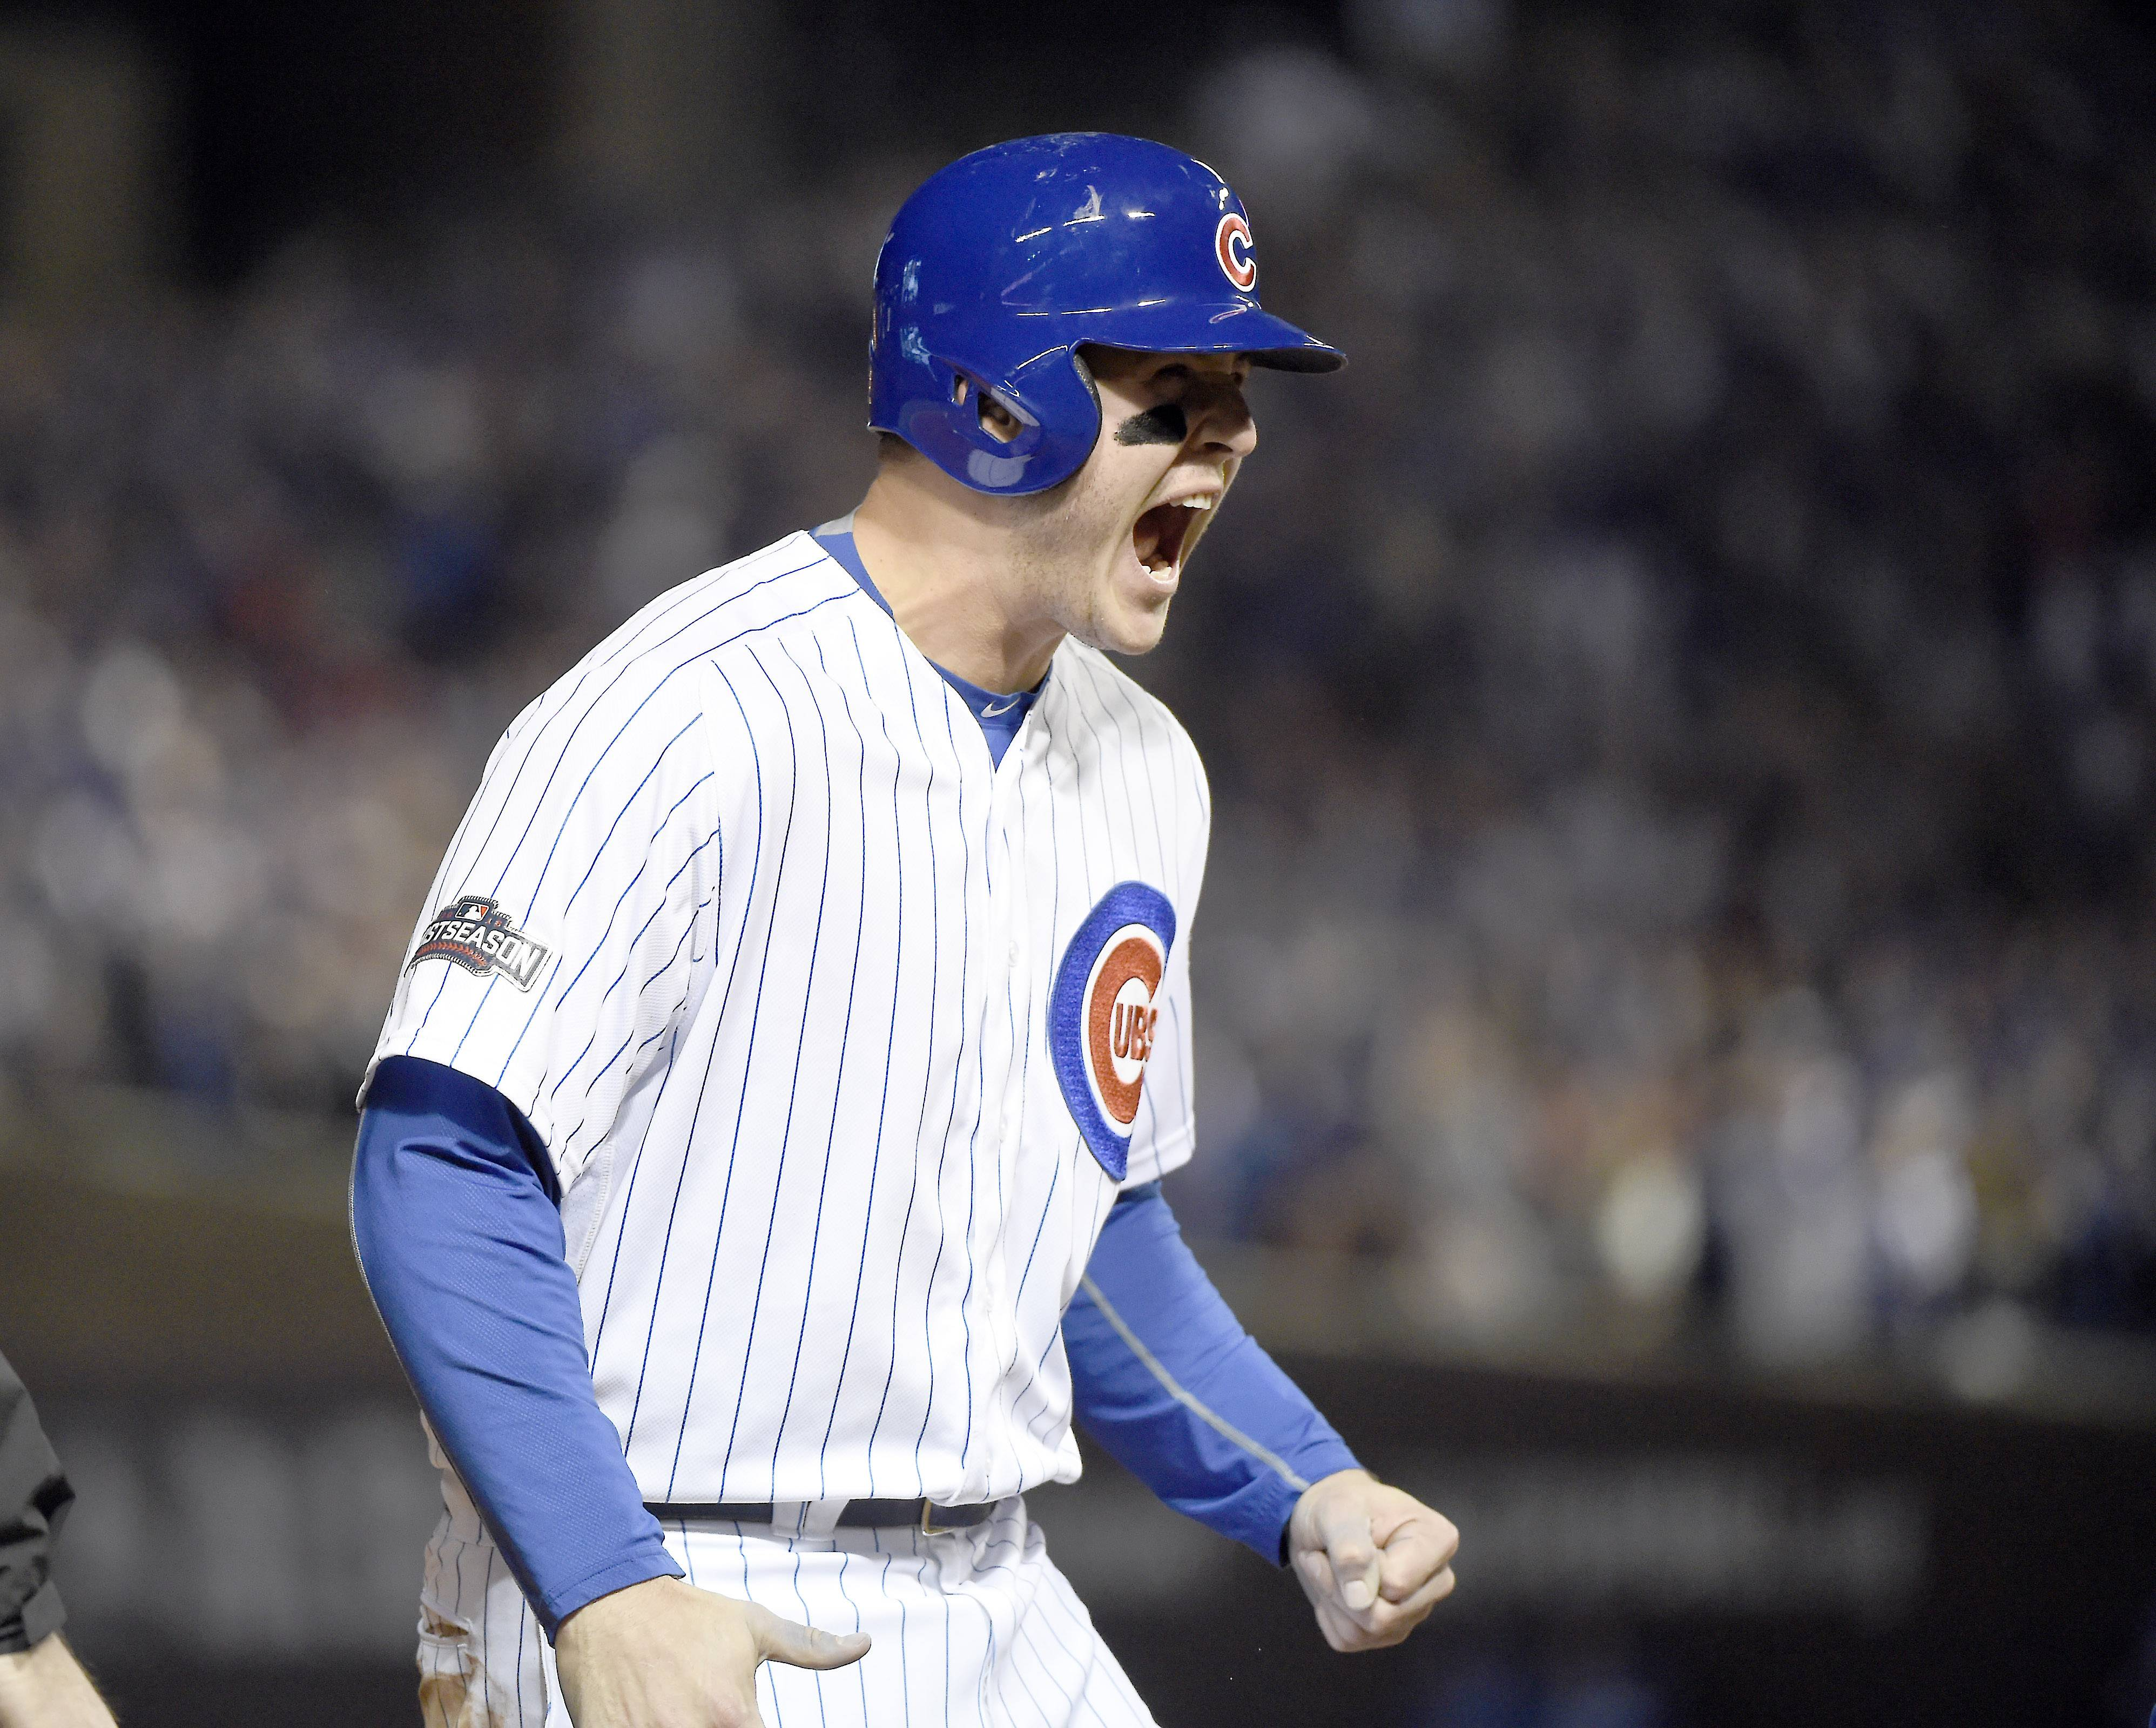 Cubs heading to first World Series in 71 years